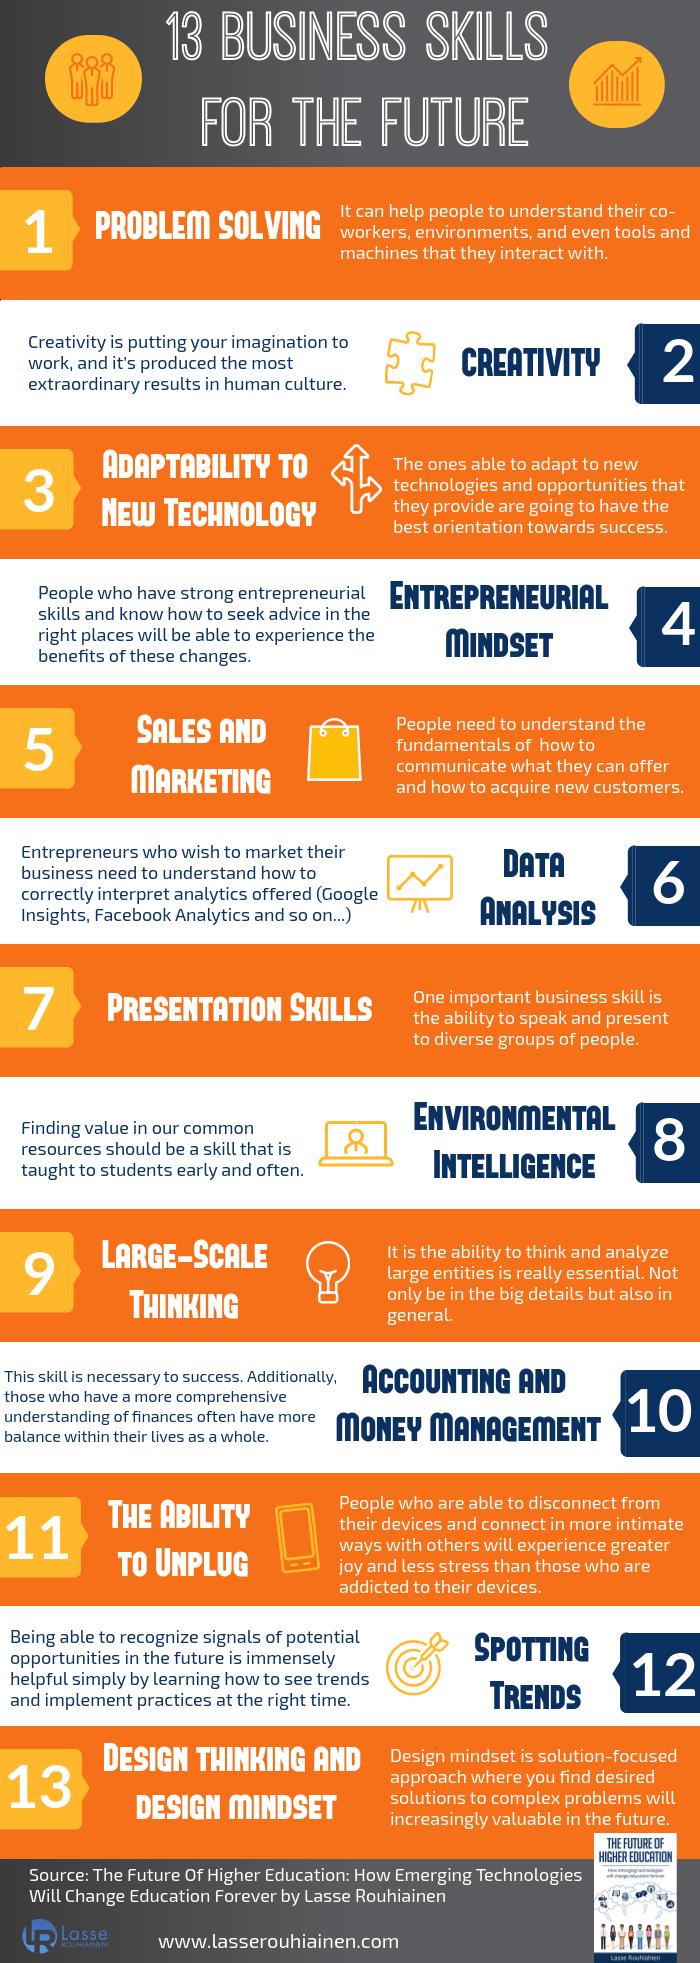 13 Business Skills For The Future Infographic